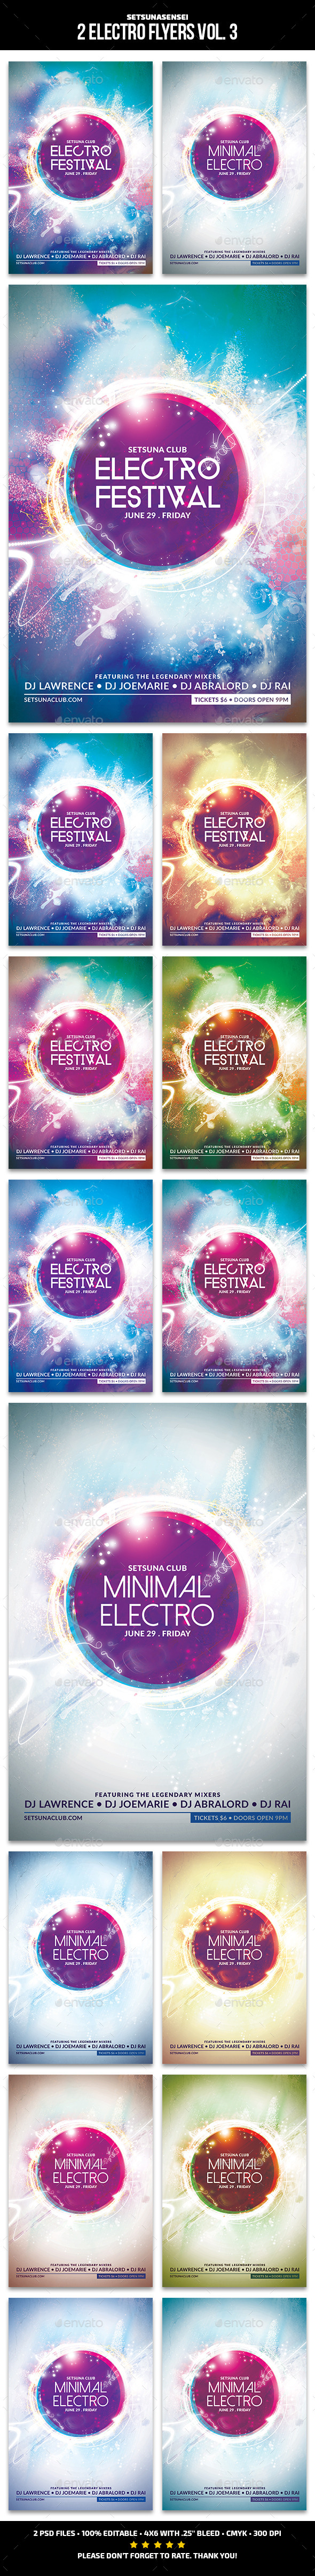 2 Electro Flyers Vol. 3 - Clubs & Parties Events